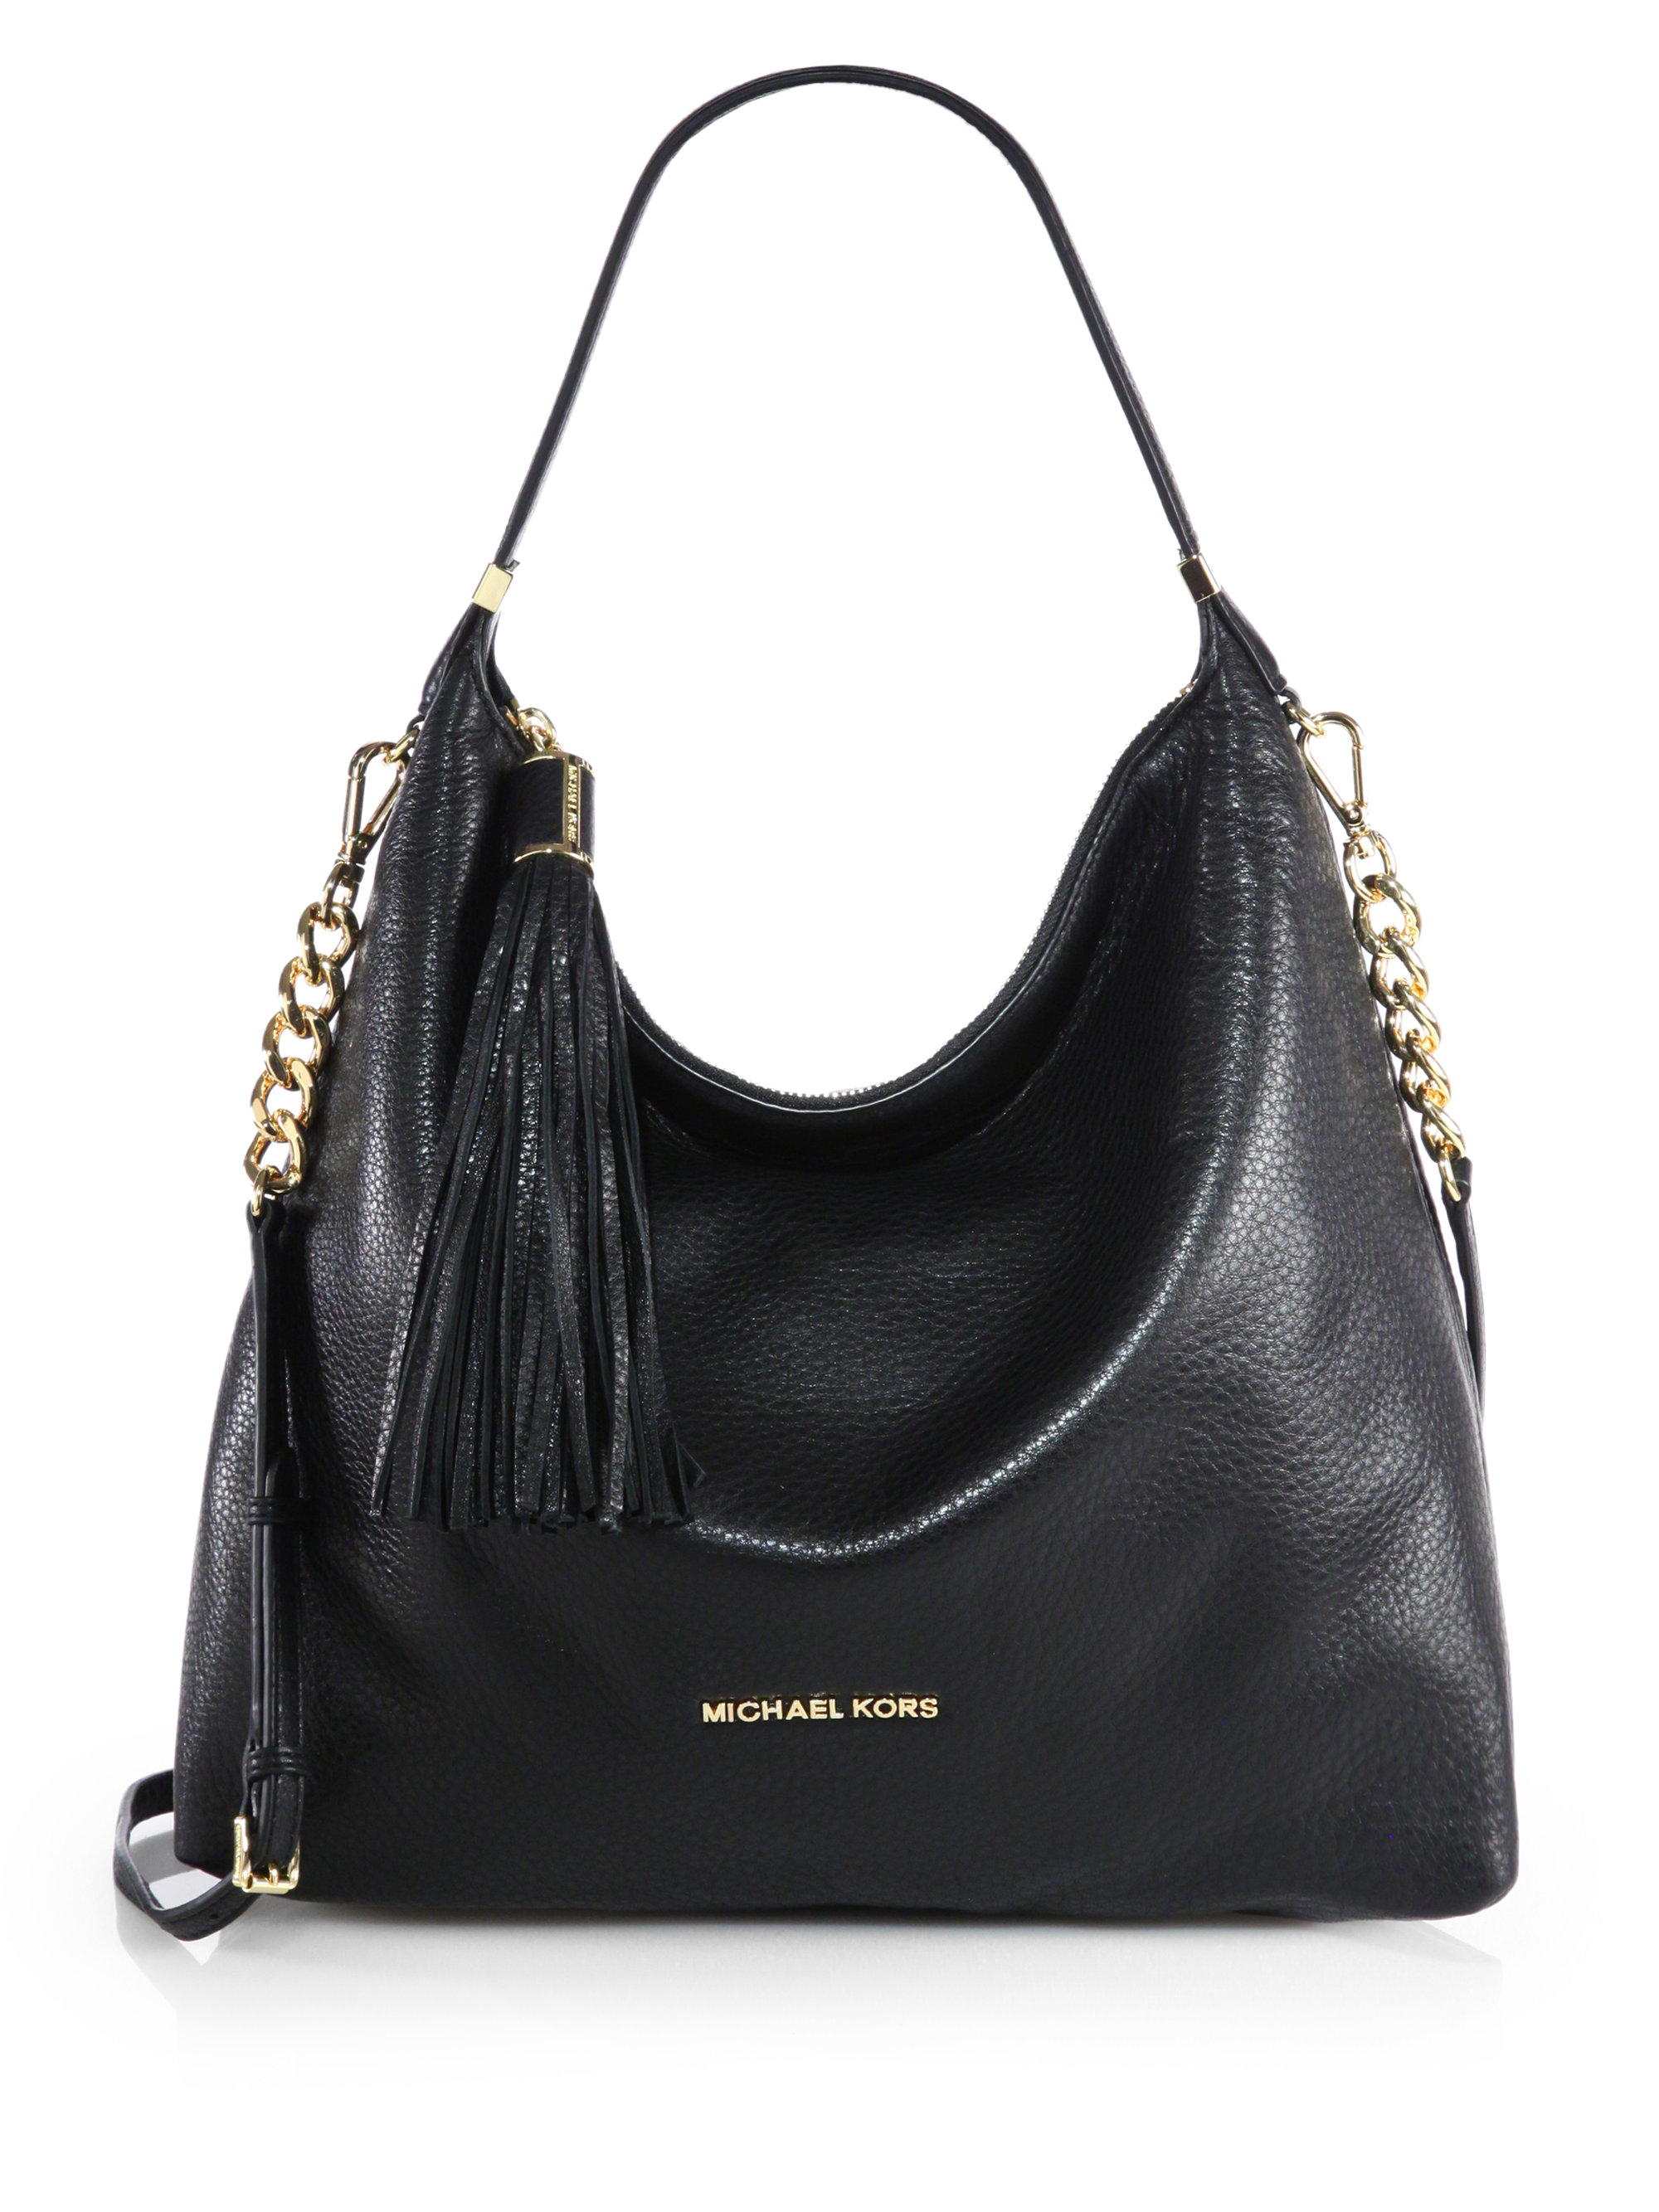 Michael michael kors Large Tassel Shoulder Bag in Black | Lyst